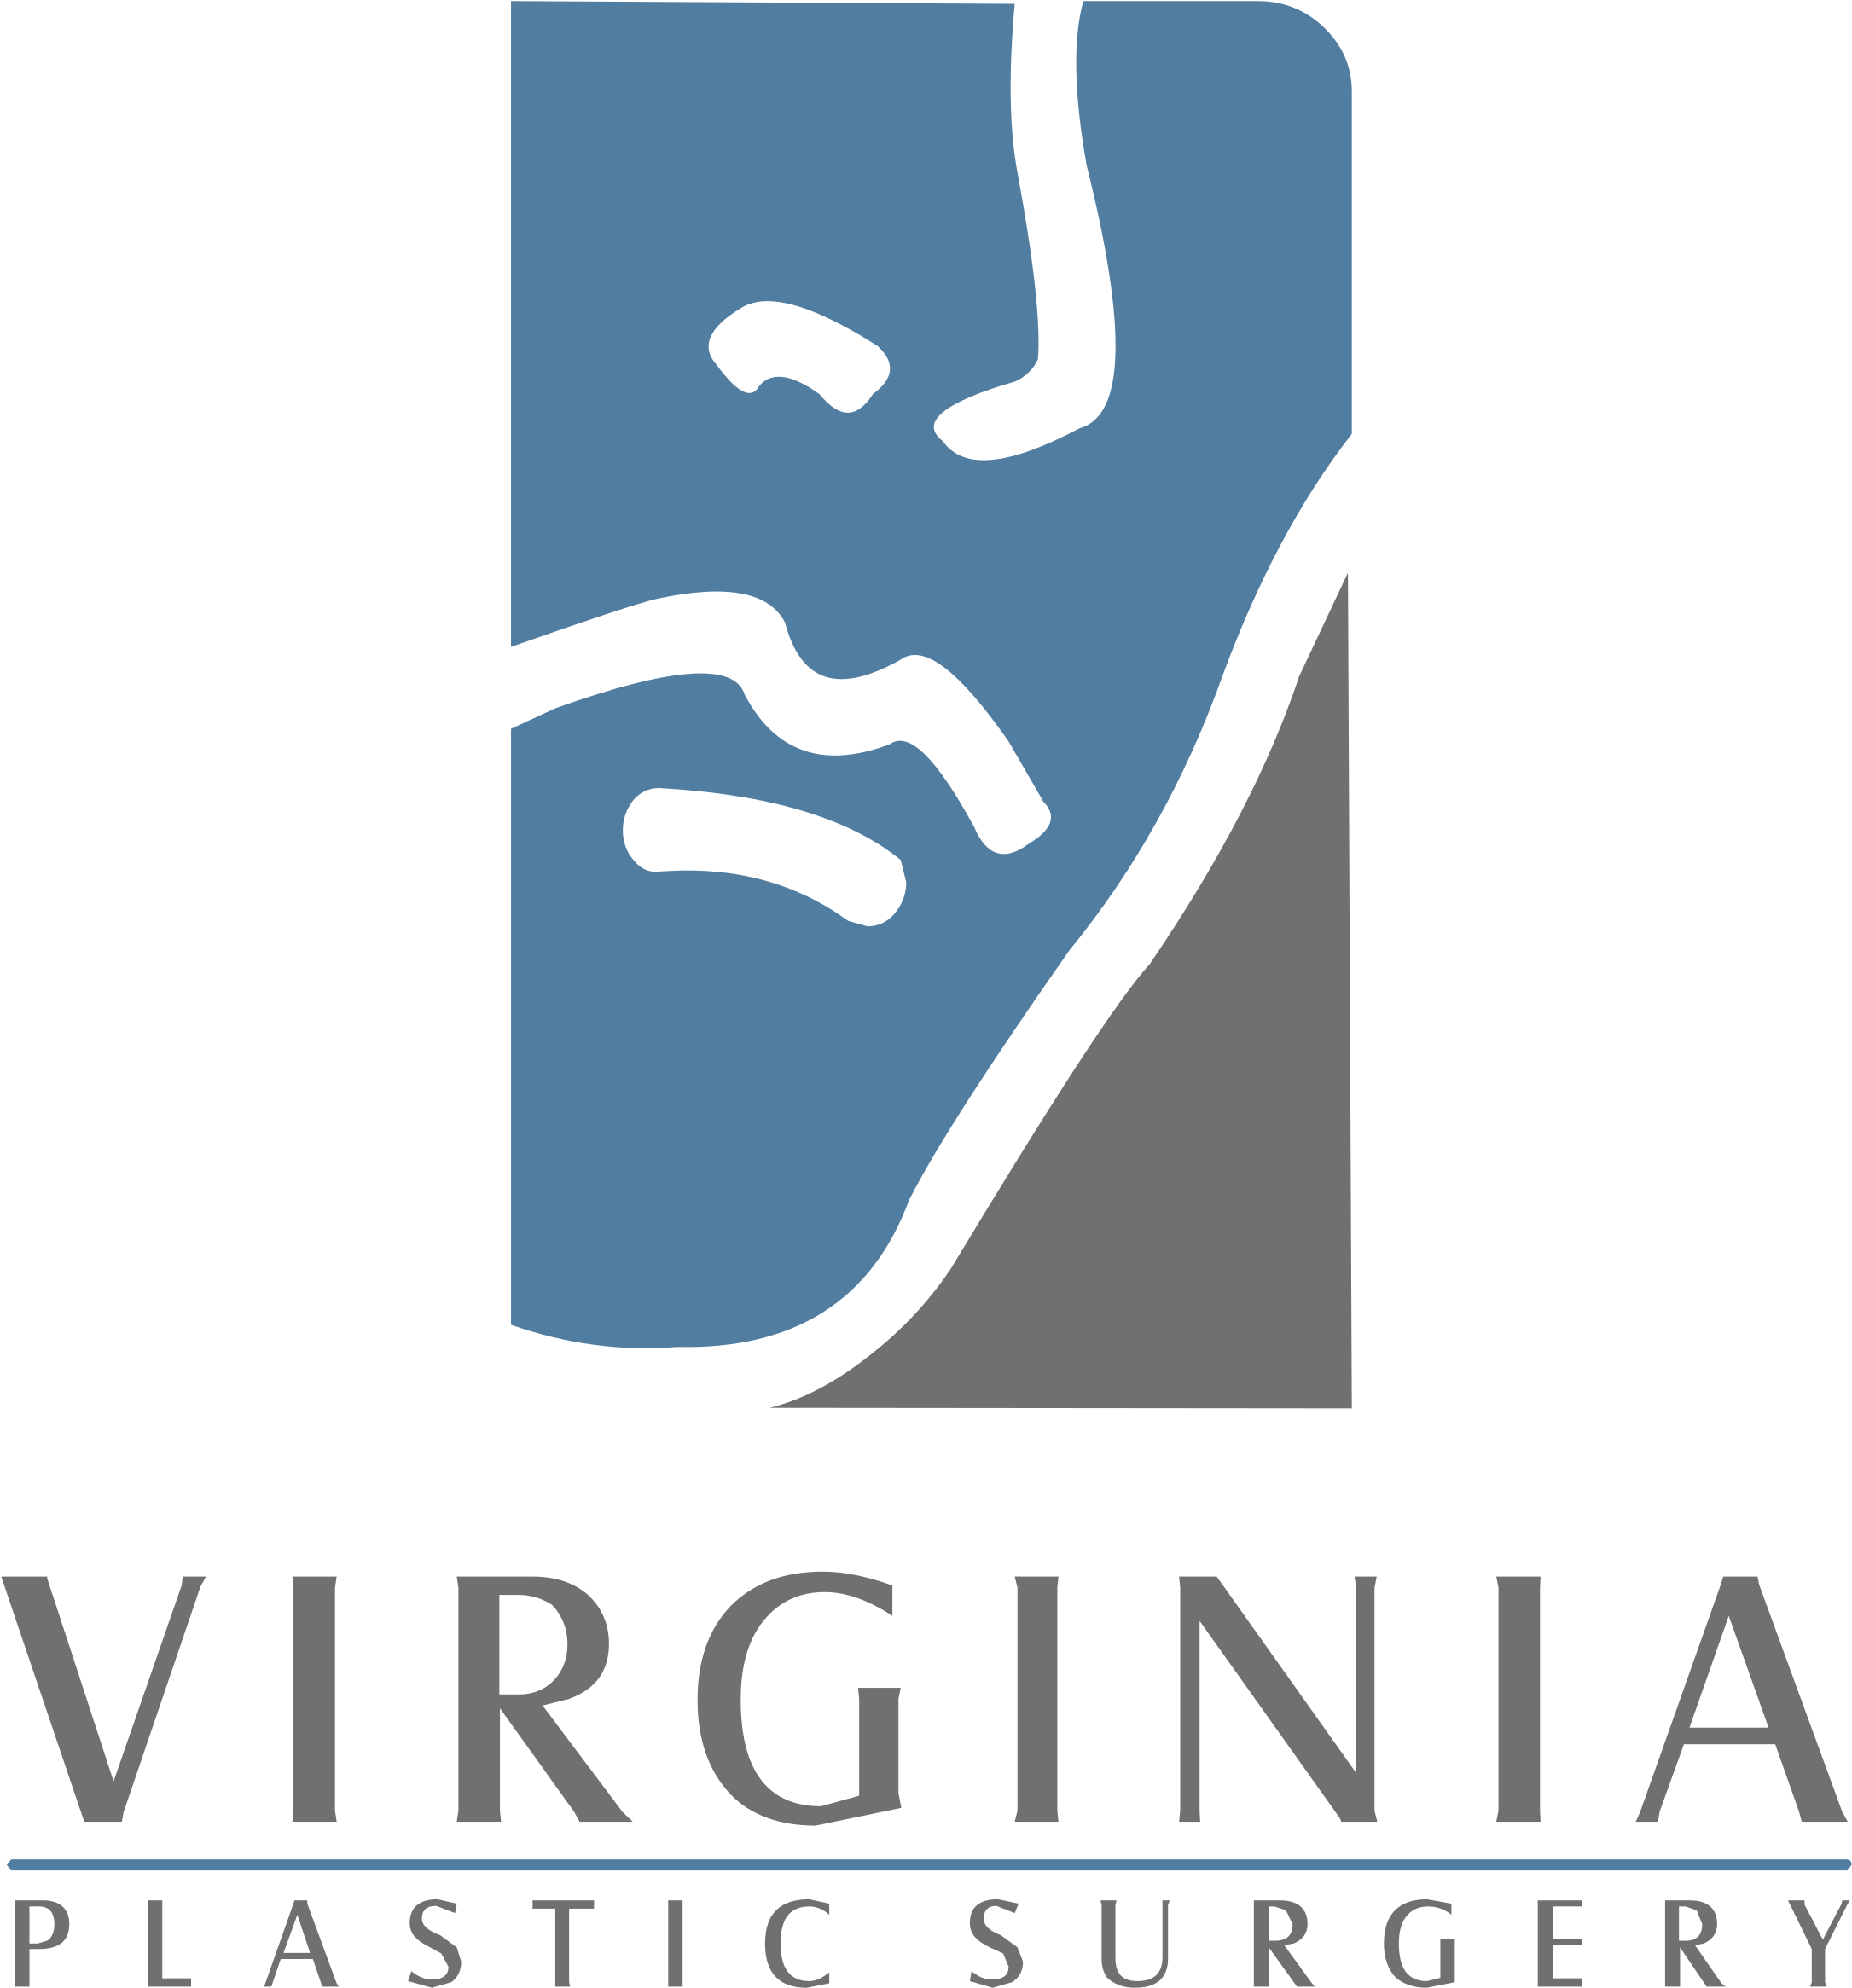 Download Virginia Plastic Surgery Logo Png Transparent Plastic Surgeon Png Image With No Background Pngkey Com